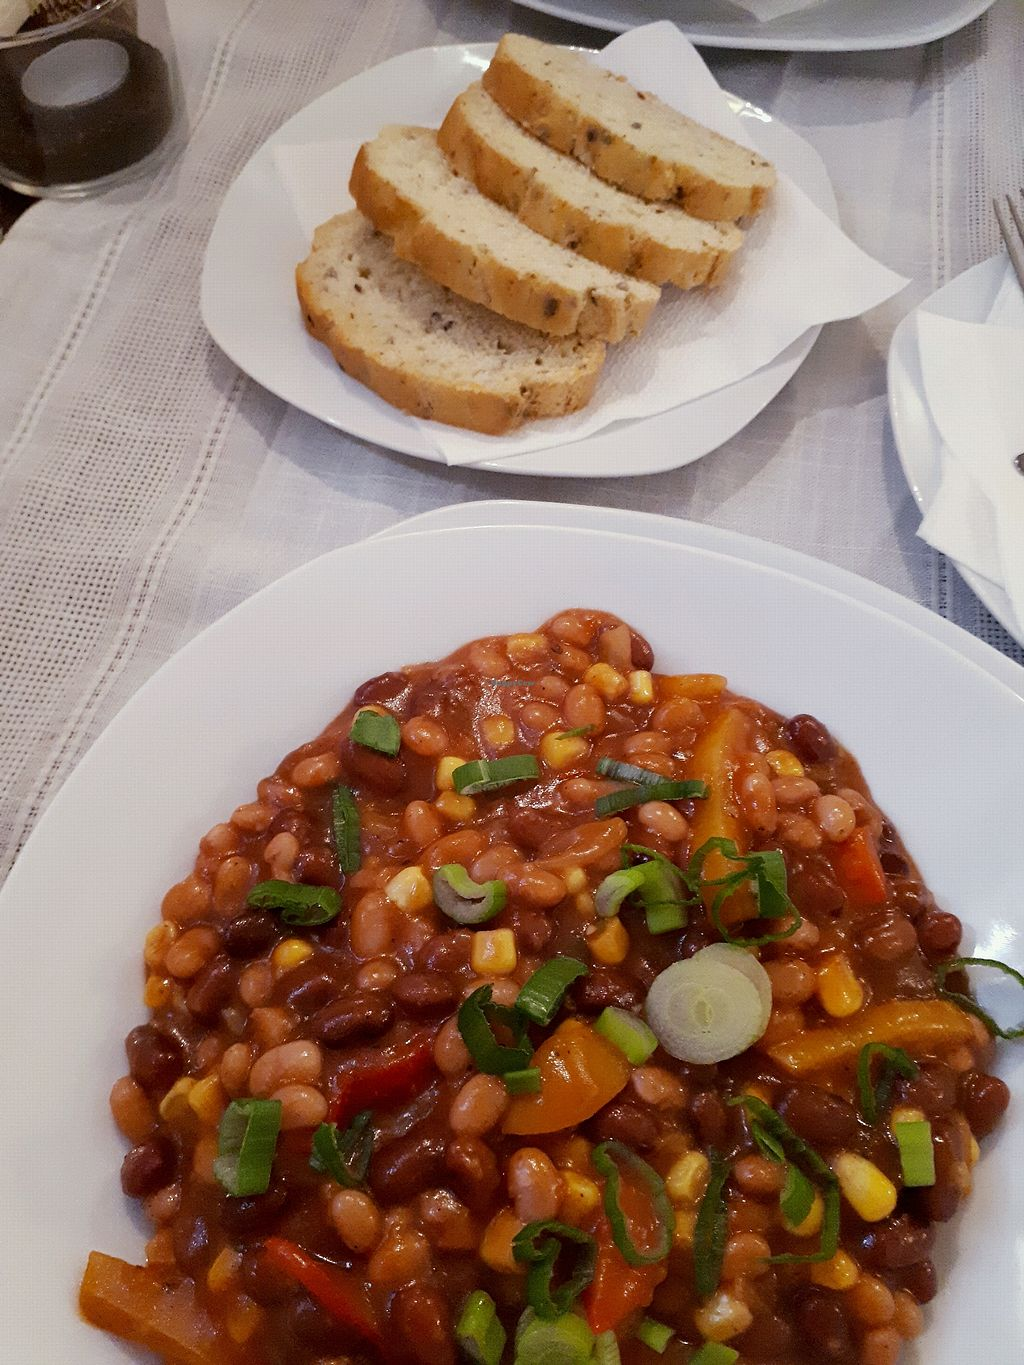 "Photo of Dobromysl  by <a href=""/members/profile/laty"">laty</a> <br/>beans with bread <br/> April 20, 2018  - <a href='/contact/abuse/image/117459/388606'>Report</a>"